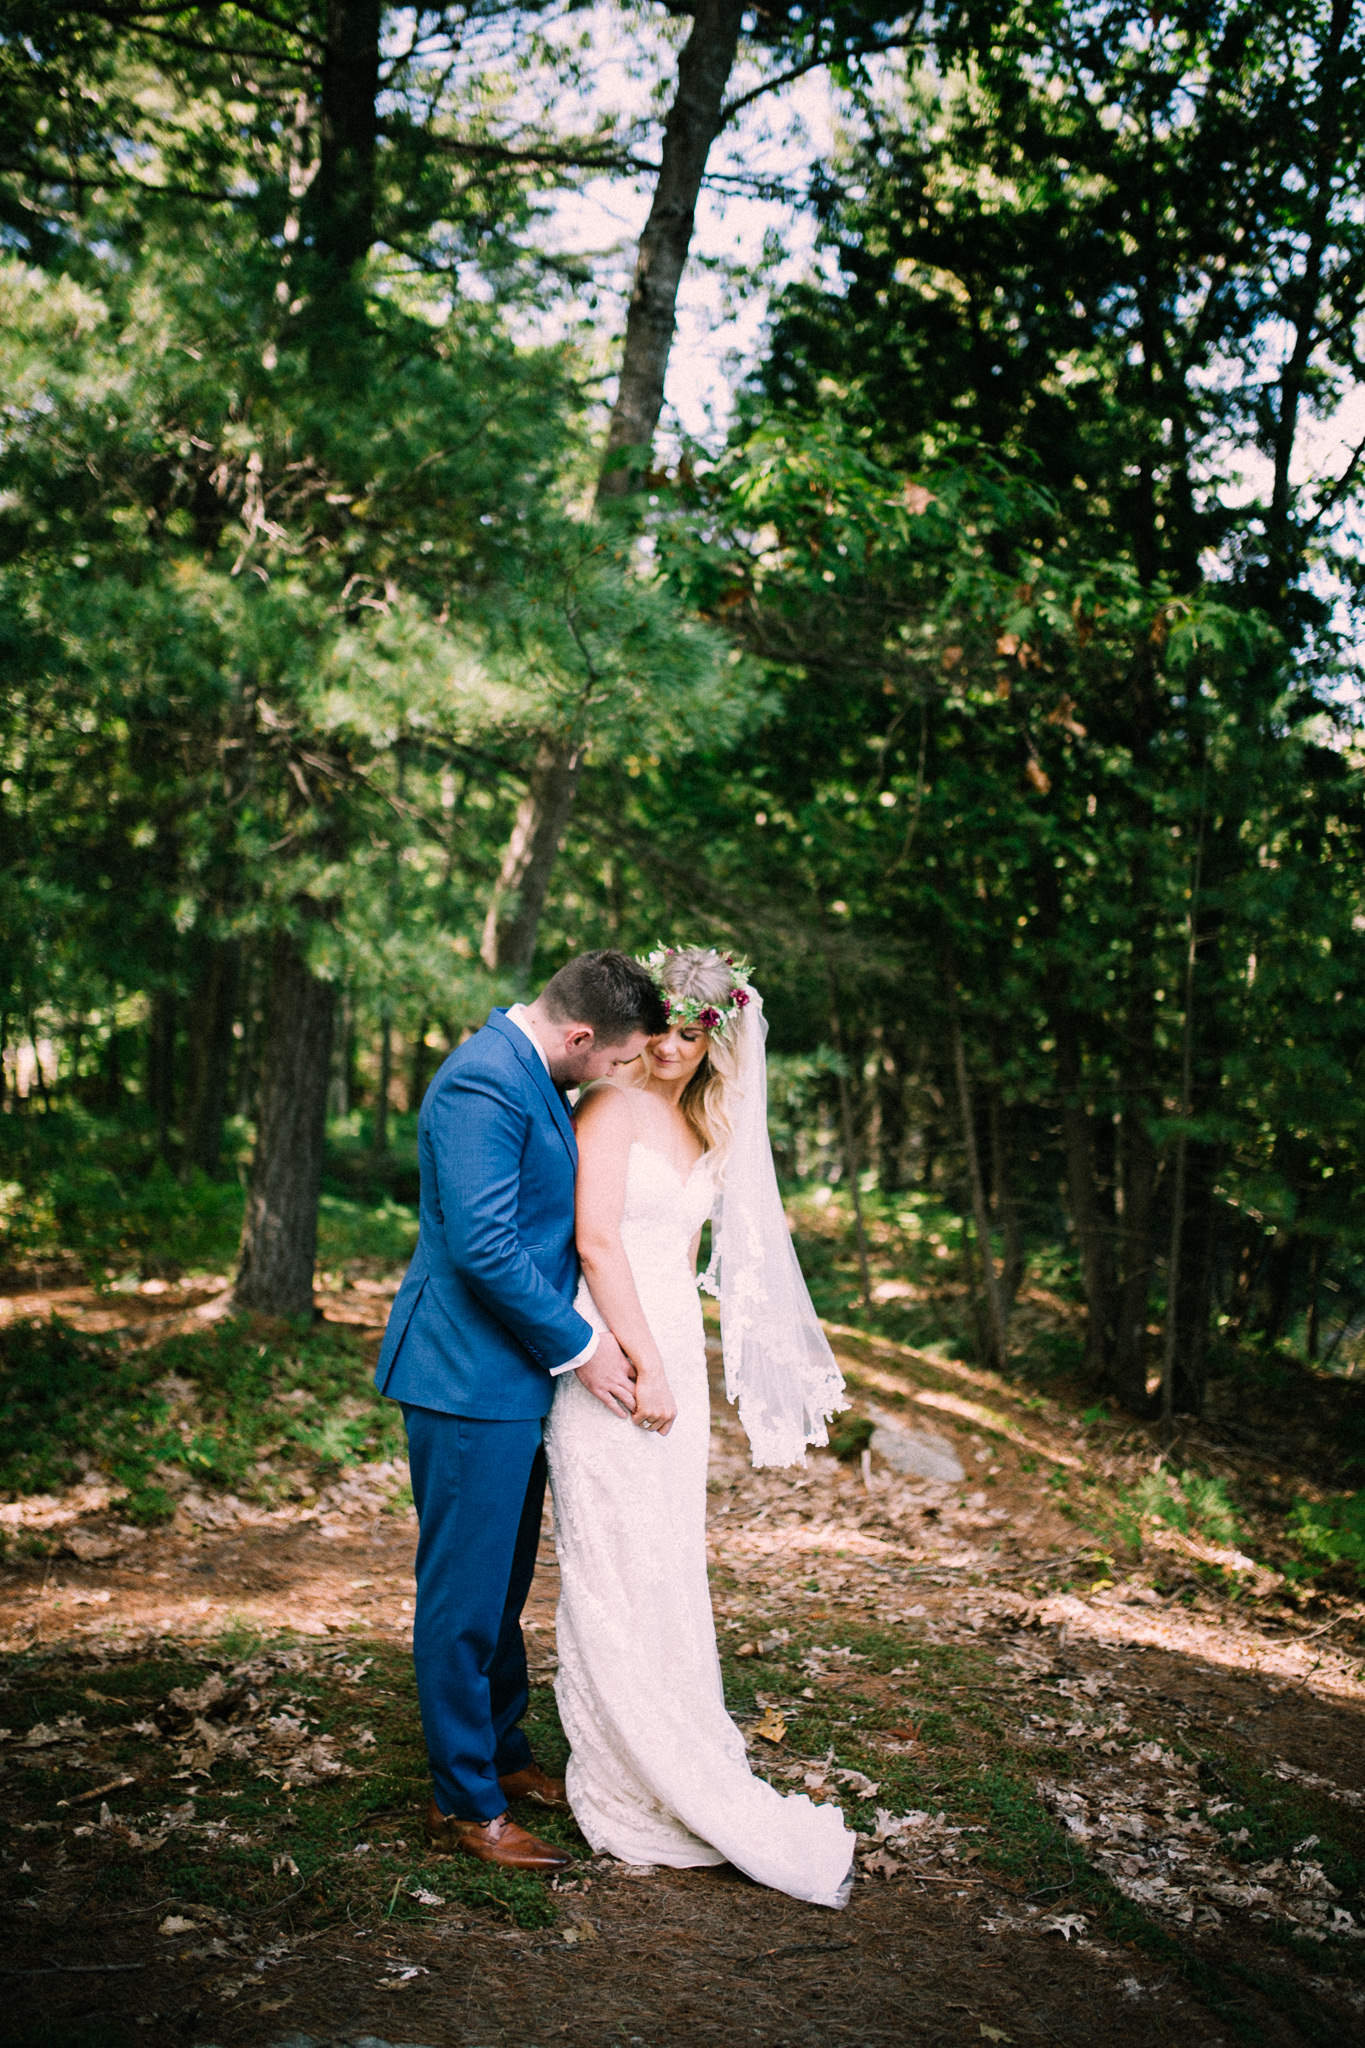 Muskoka lakeside wedding at Port Cunnington Lodge by Max Wong Photo (15)